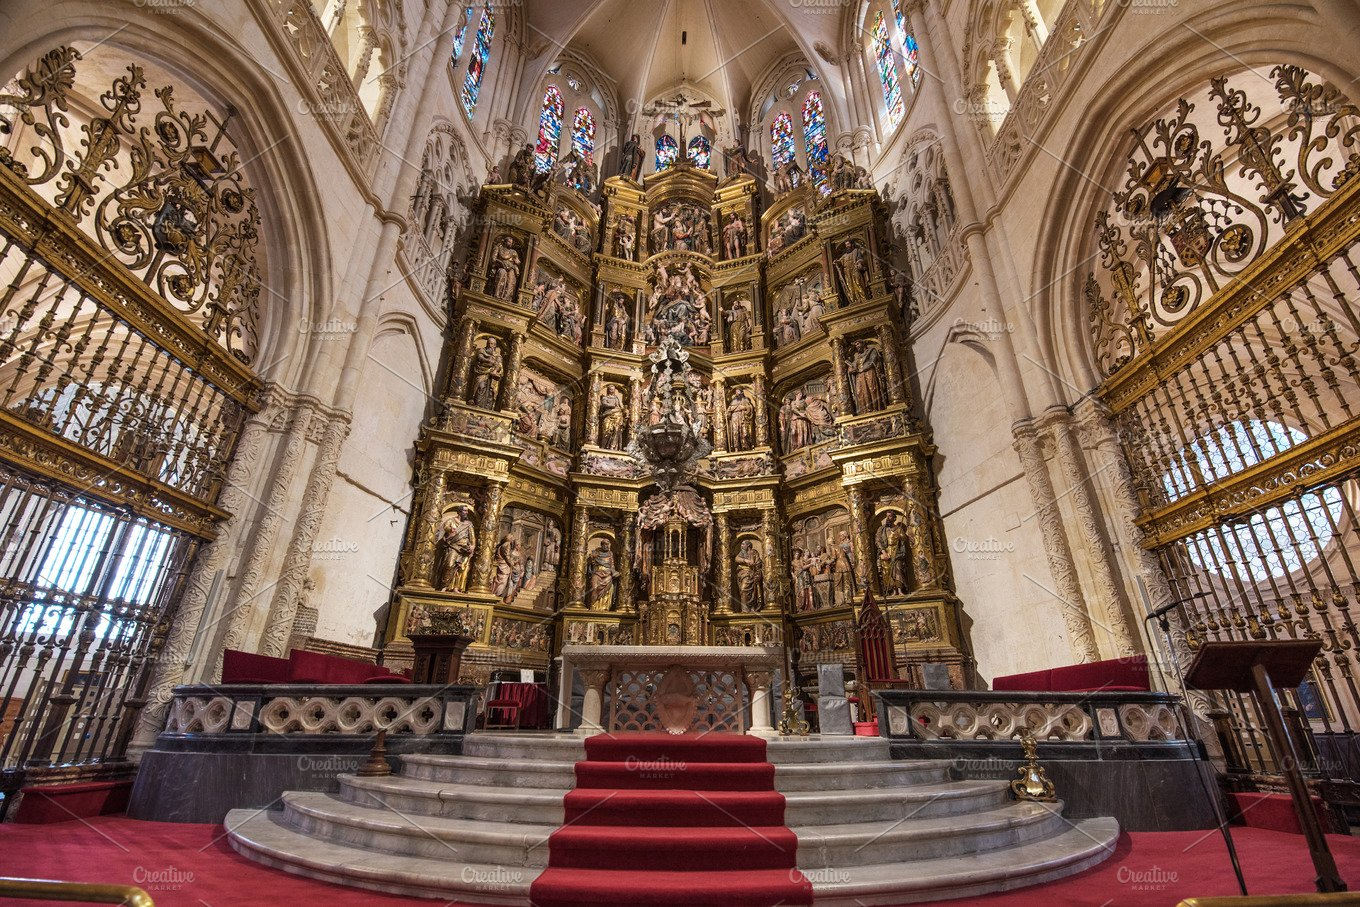 Interior of famous Burgos cathedral ~ Architecture Photos ...  Interior of fam...